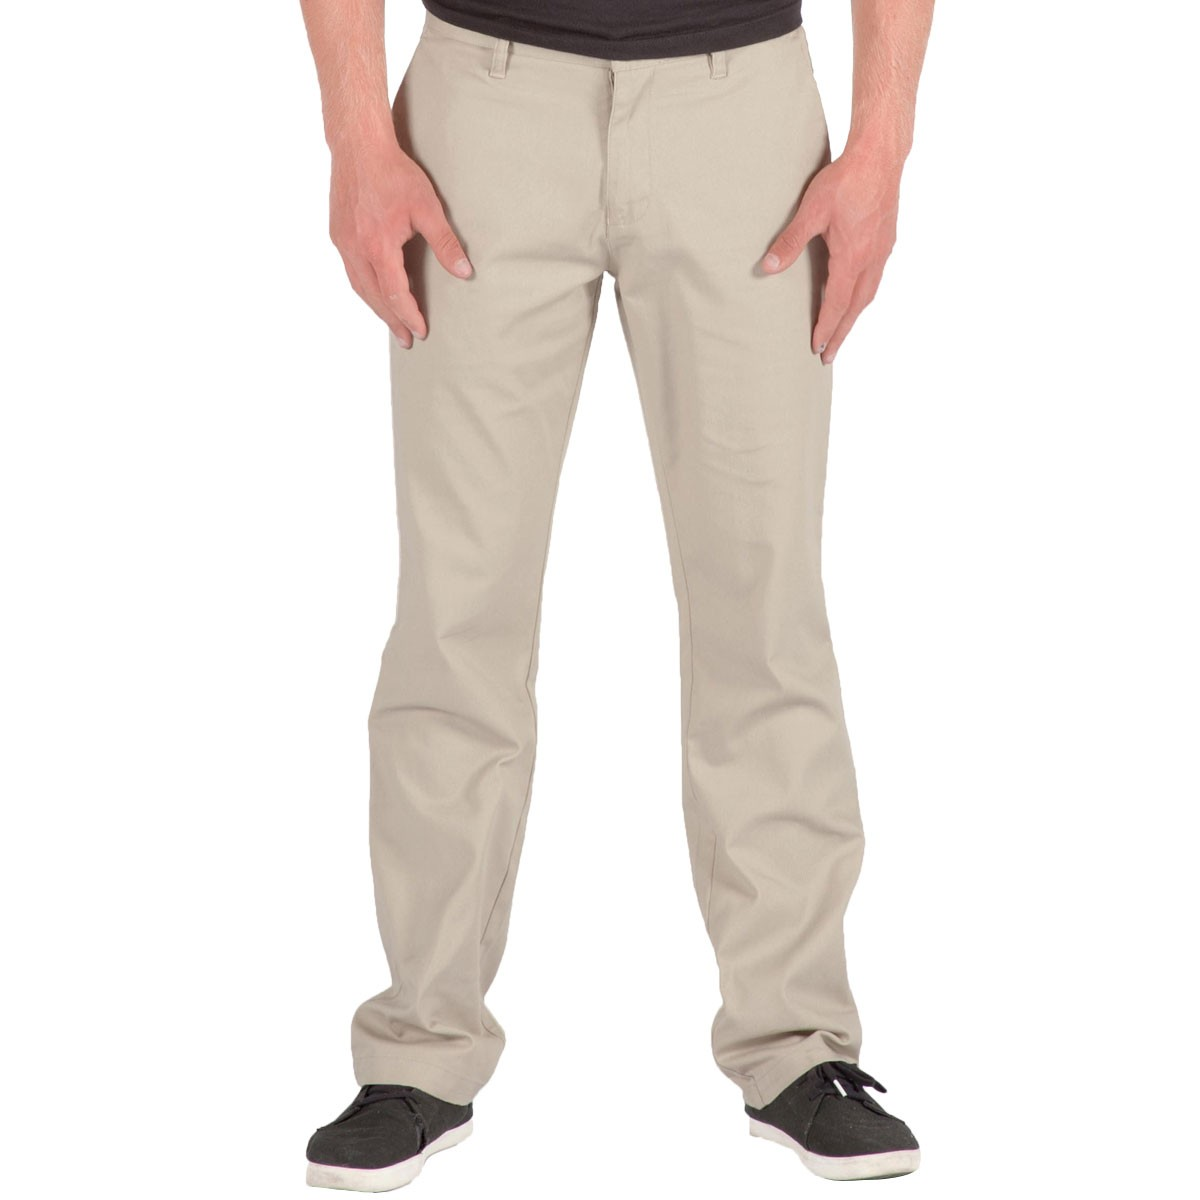 Volcom Frickin Modern Stretch Chino Pants - Stone